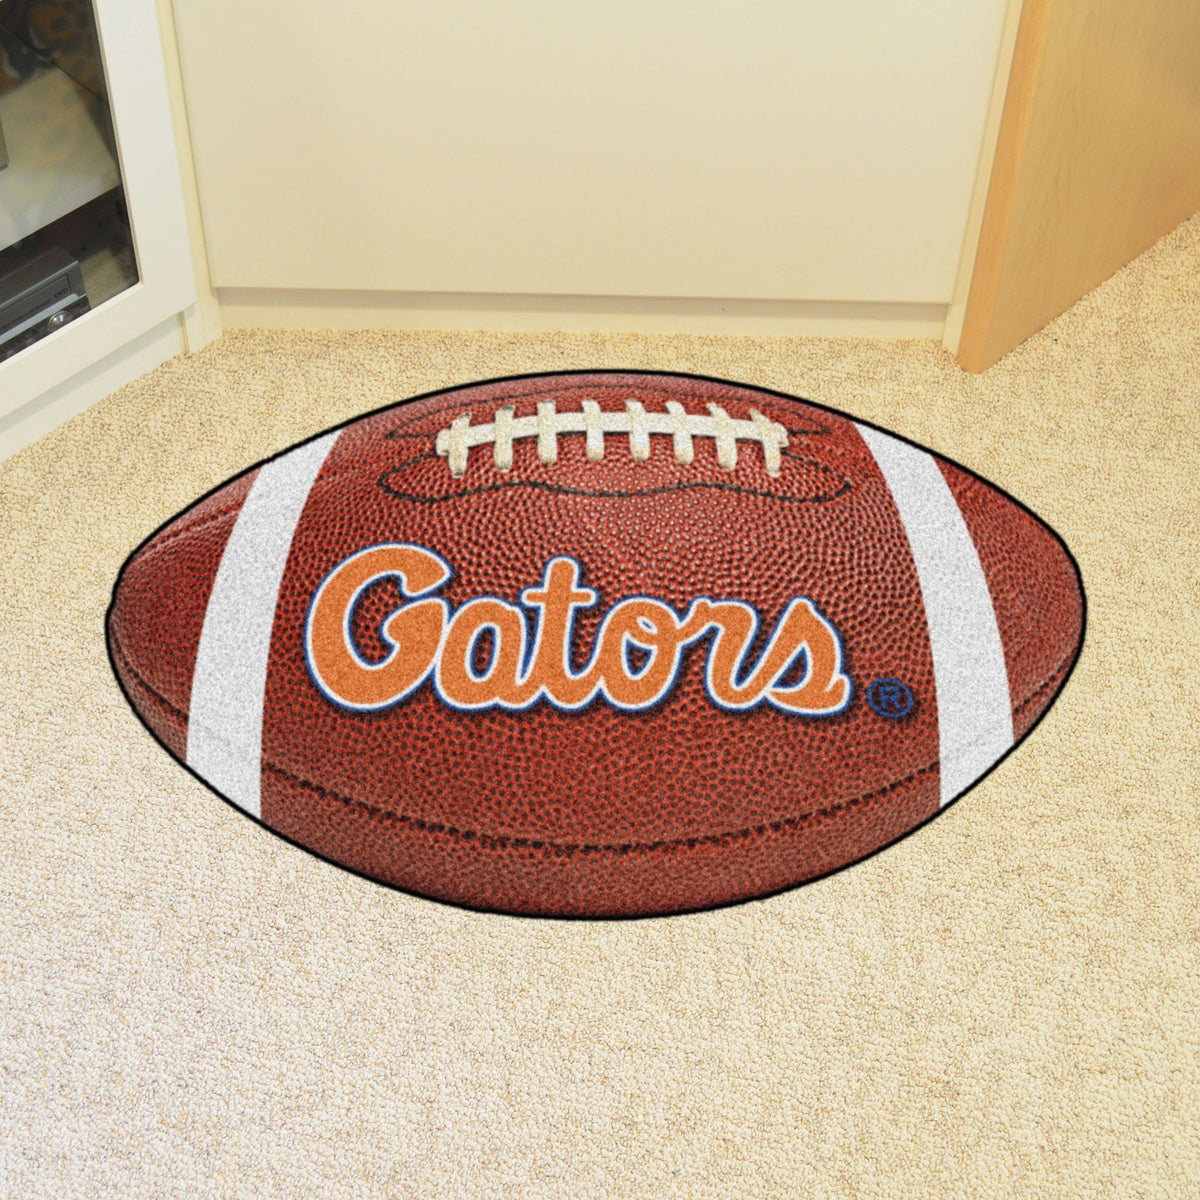 Collegiate - Football Mat: A - K Collegiate Mats, Rectangular Mats, Football Mat, Collegiate, Home Fan Mats Florida 2